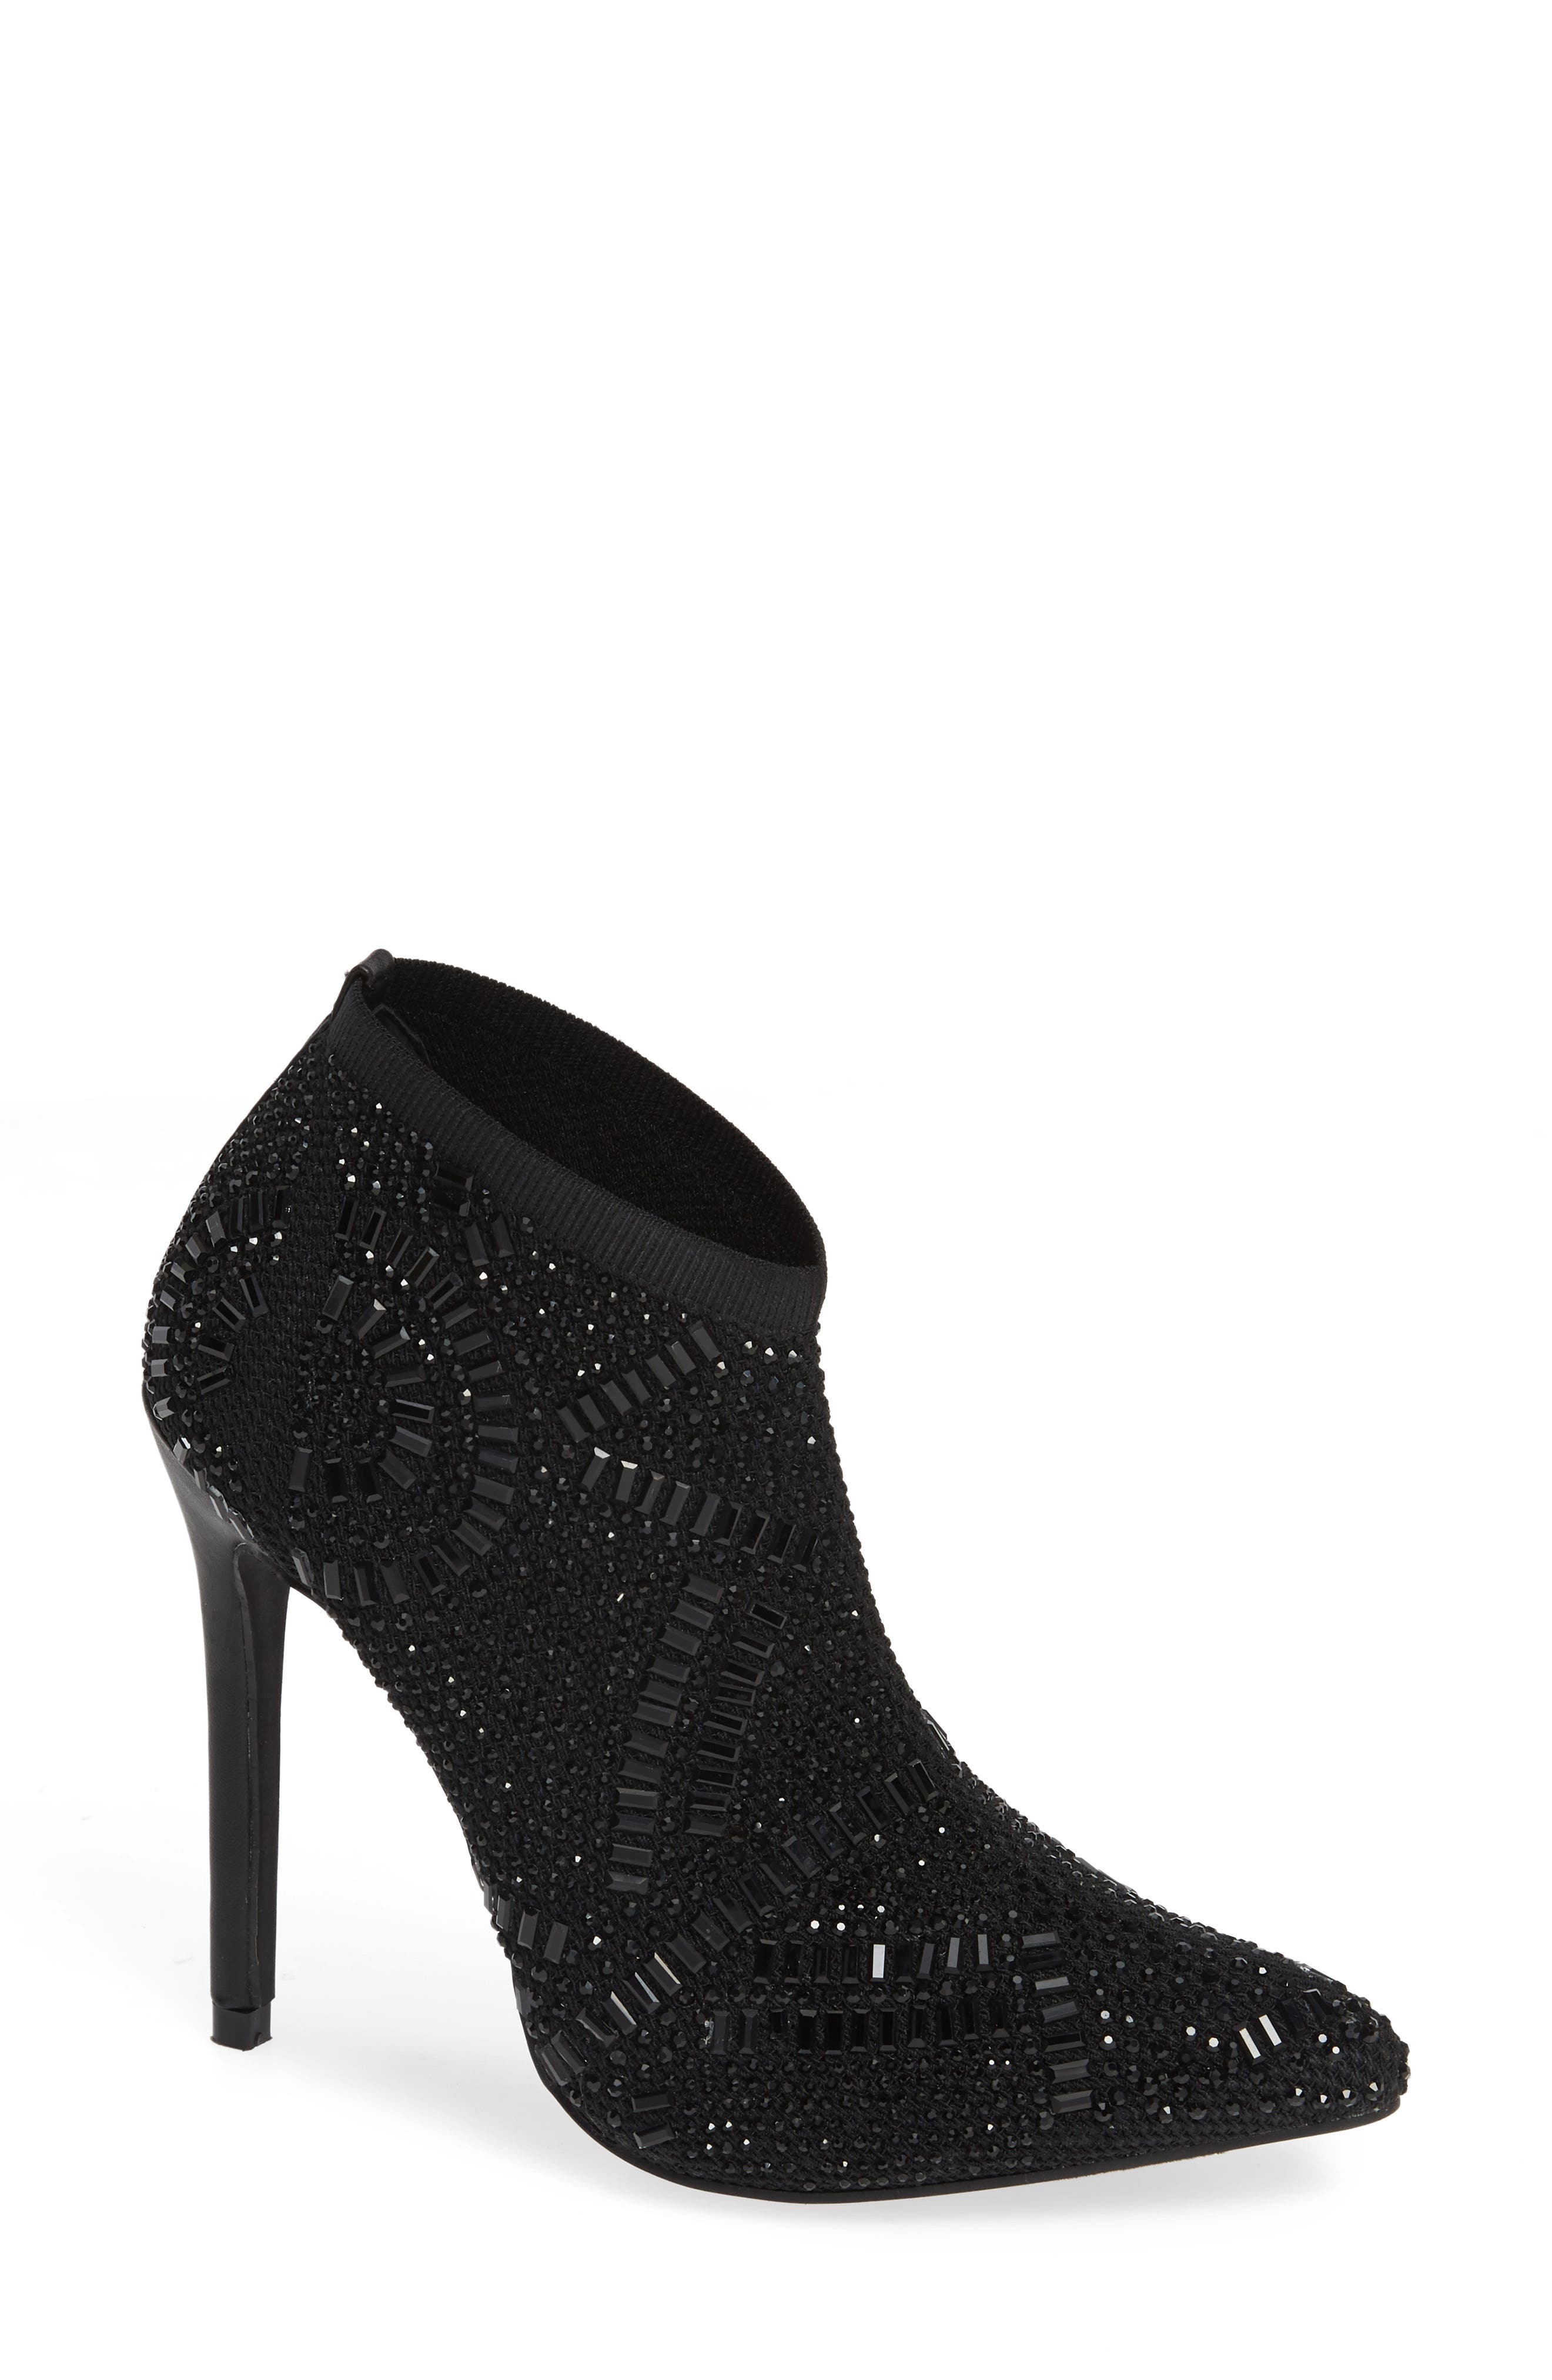 LAUREN LORRAINE, Sarah Crystal Embellished Bootie, Main thumbnail 1, color, BLACK FABRIC